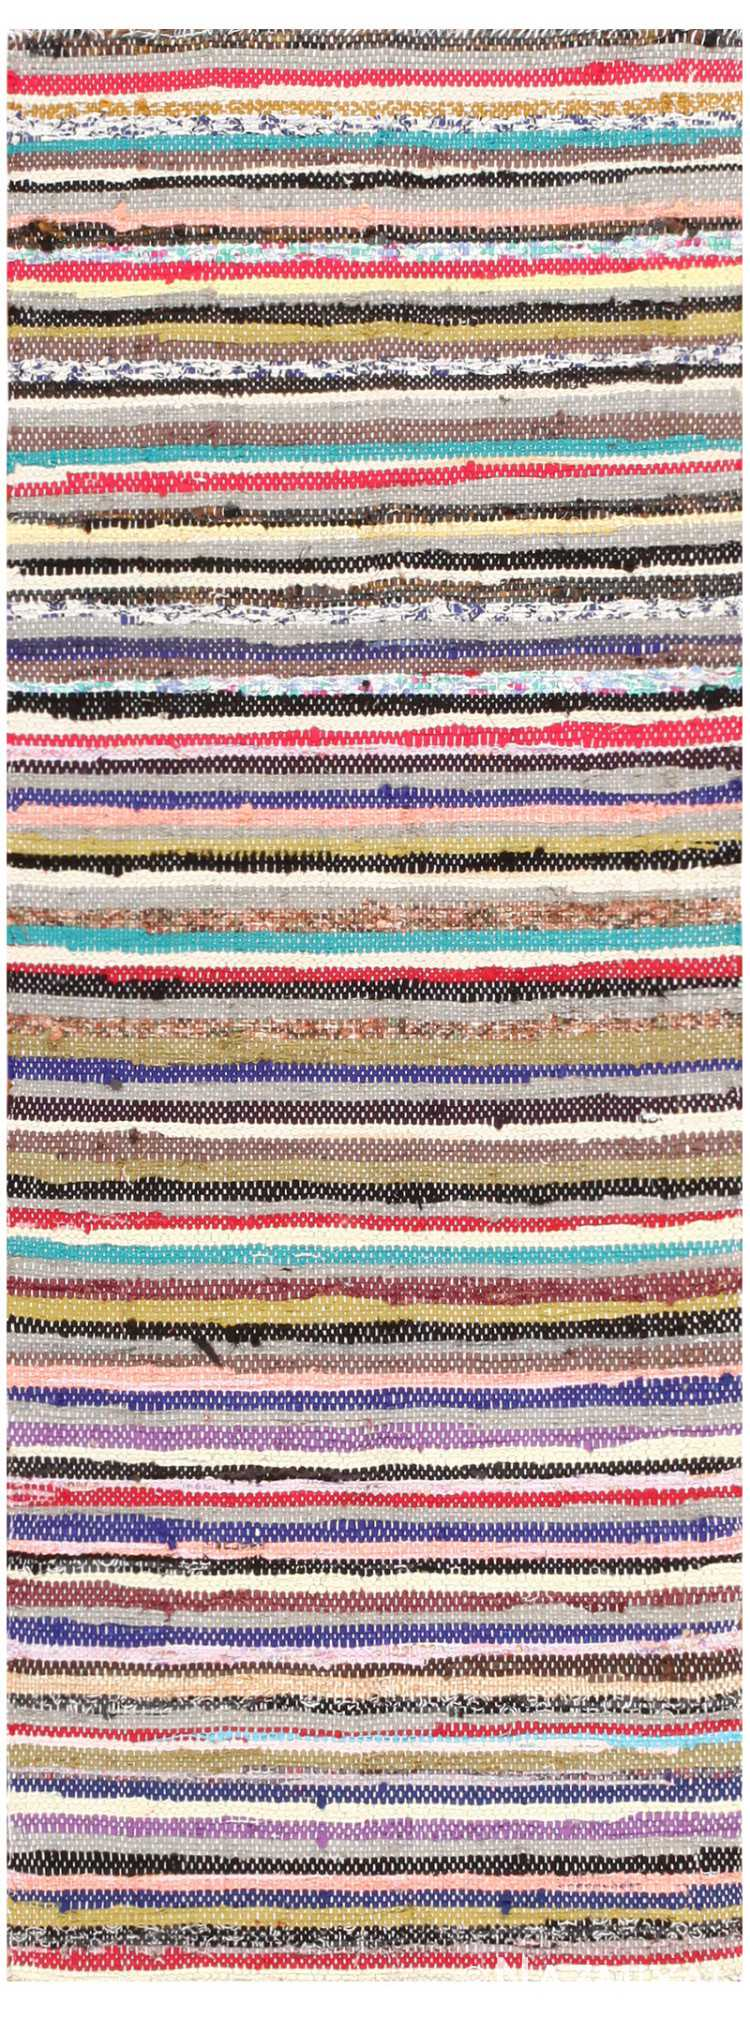 Vintage Swedish Rag Rug 46659 Detail/Large View